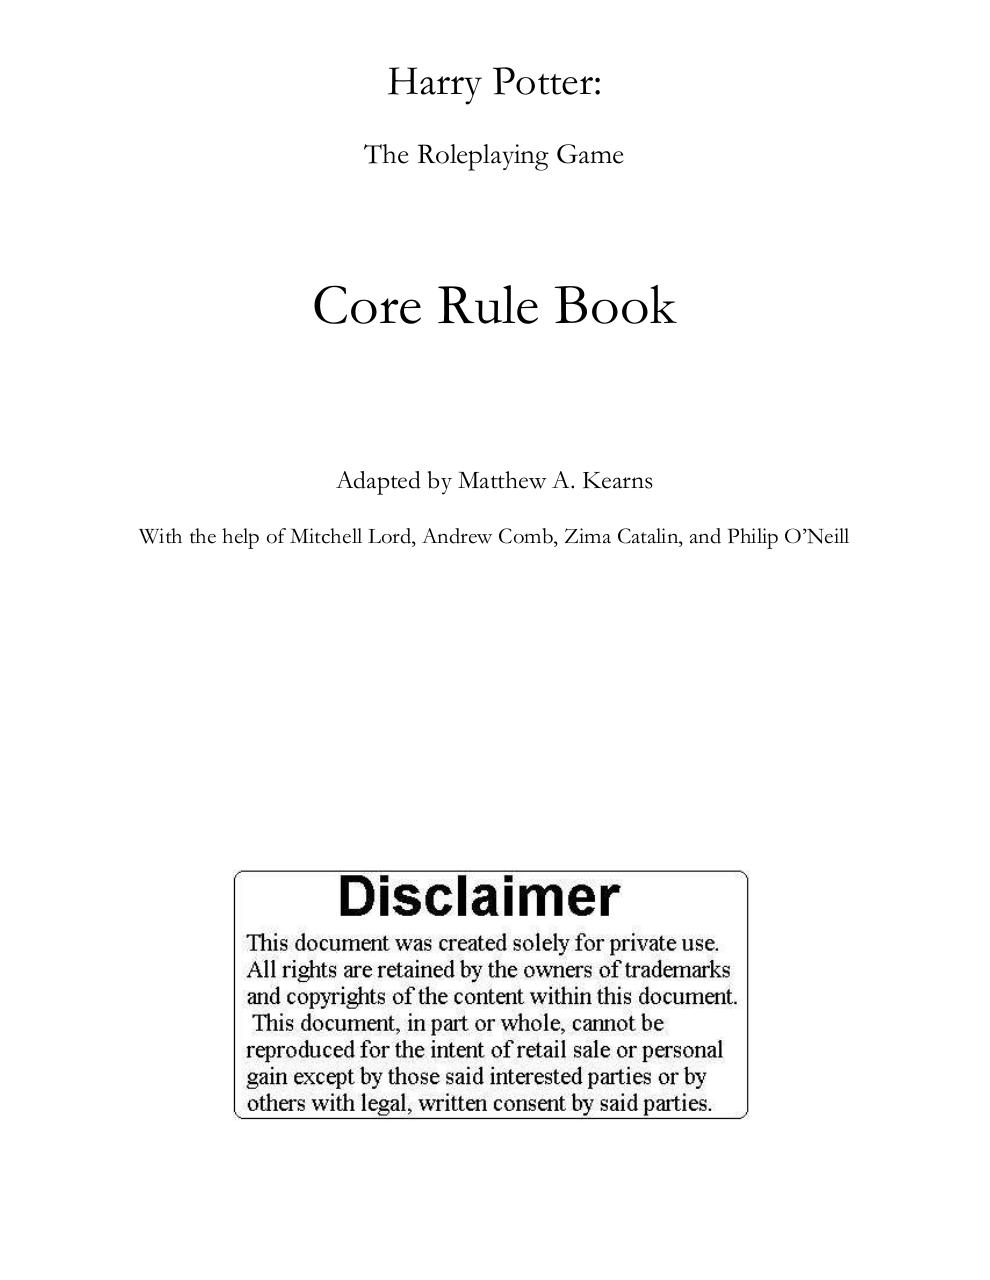 Harry Potter RPG Core Rule Book.pdf - page 1/163